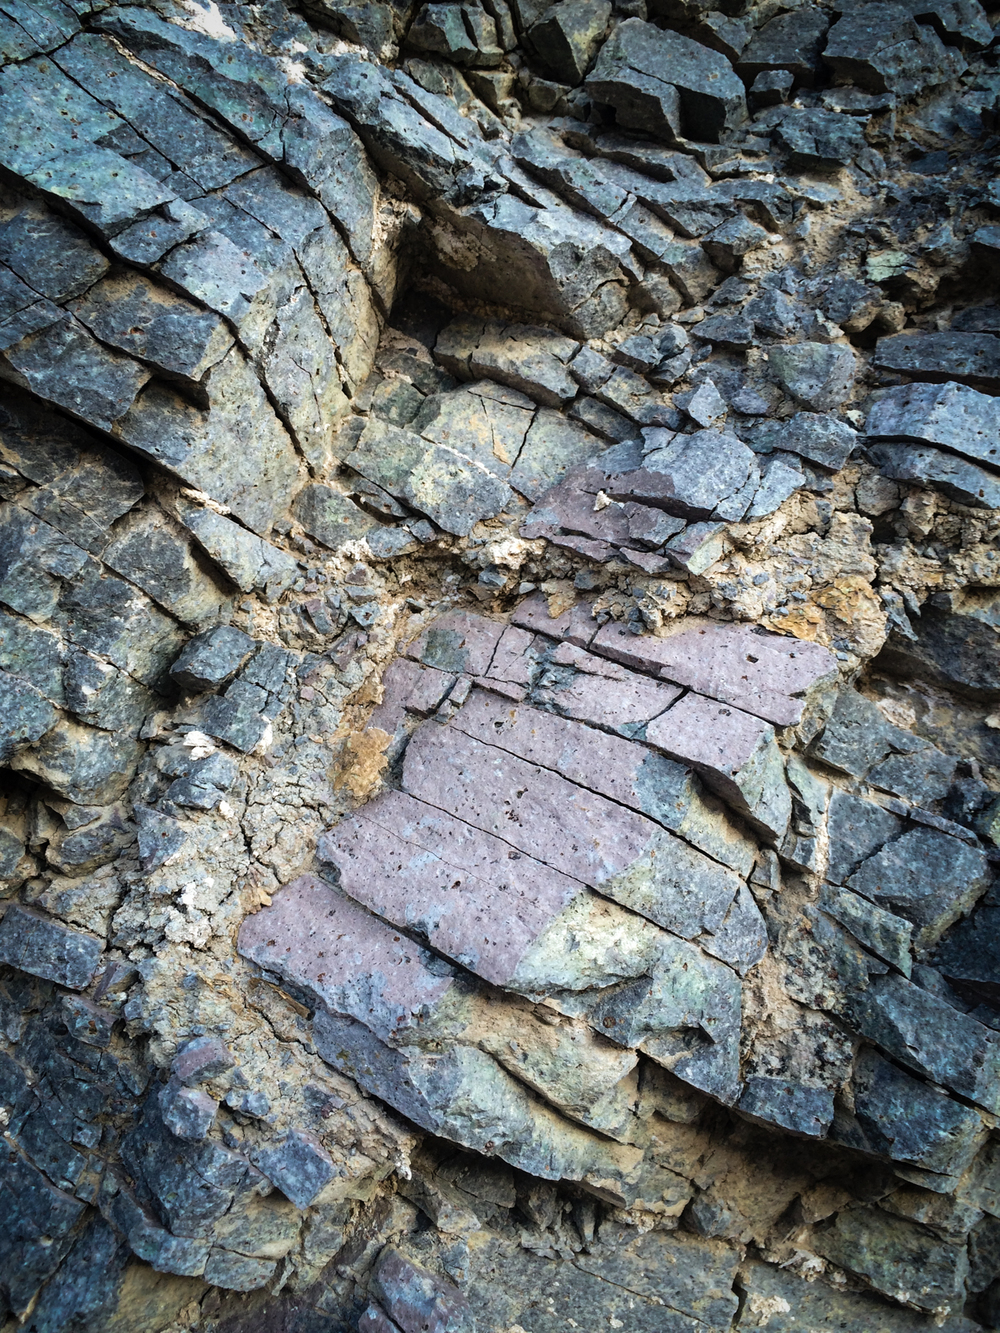 Rock layers. Death Valley National Park, California. August 2015.